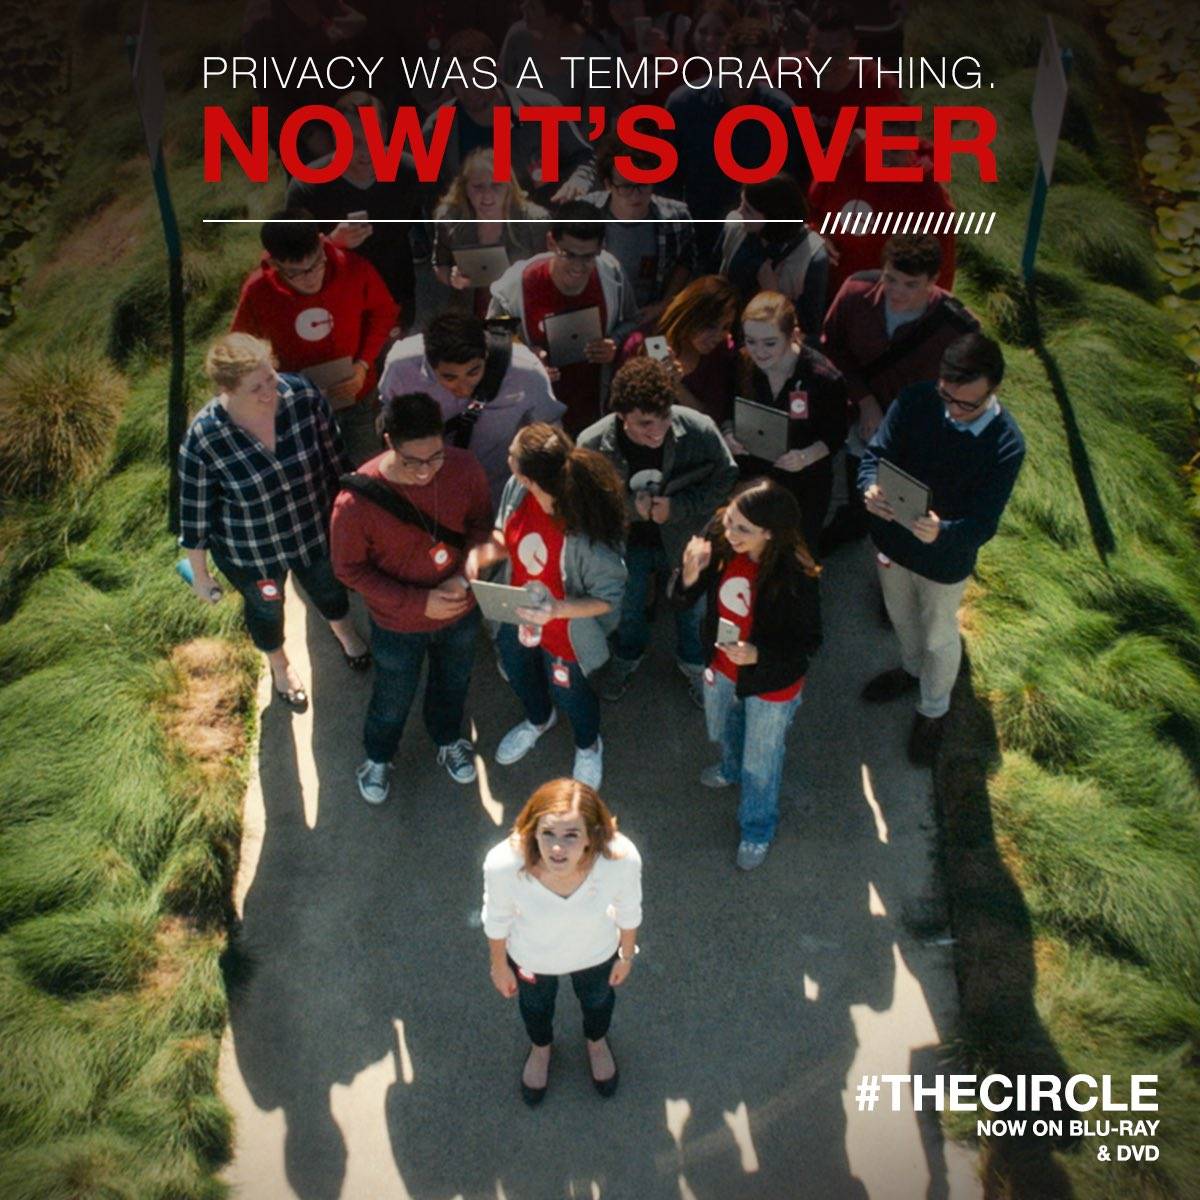 Once you're in #TheCircle, there's no turning back. Watch it now on Blu-ray & DVD. bit.ly/2gXs6hi